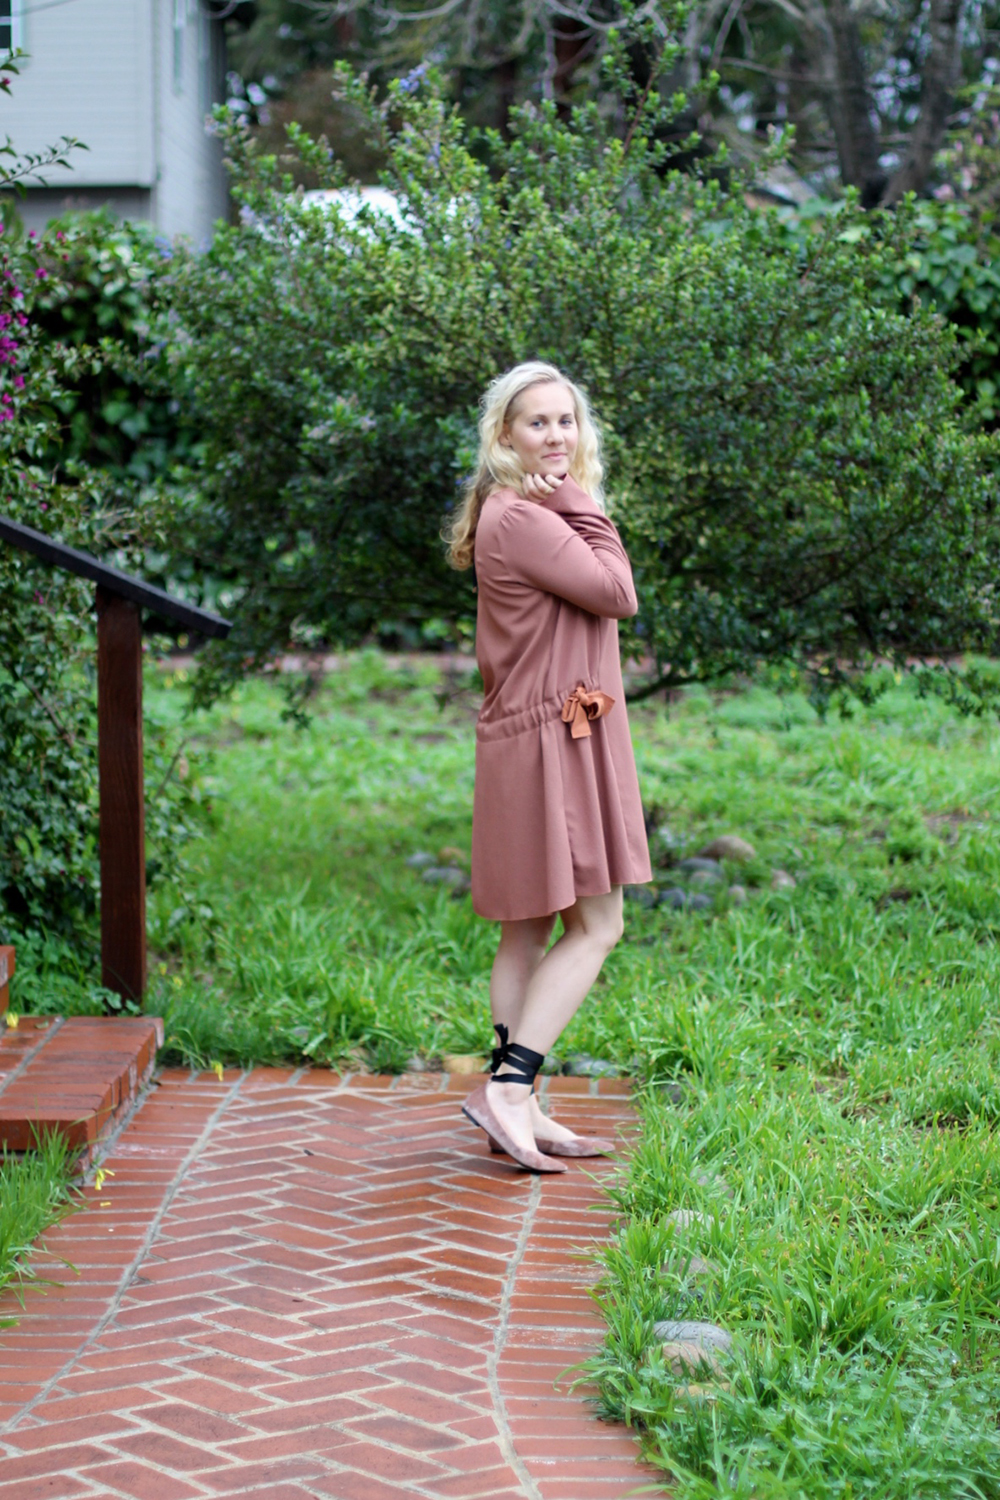 Dusty Pink Dress-See by Chloe-Valentines Day Outfit-Outfit Inspiration-Ankle Tie Flats-Have Need Want 5